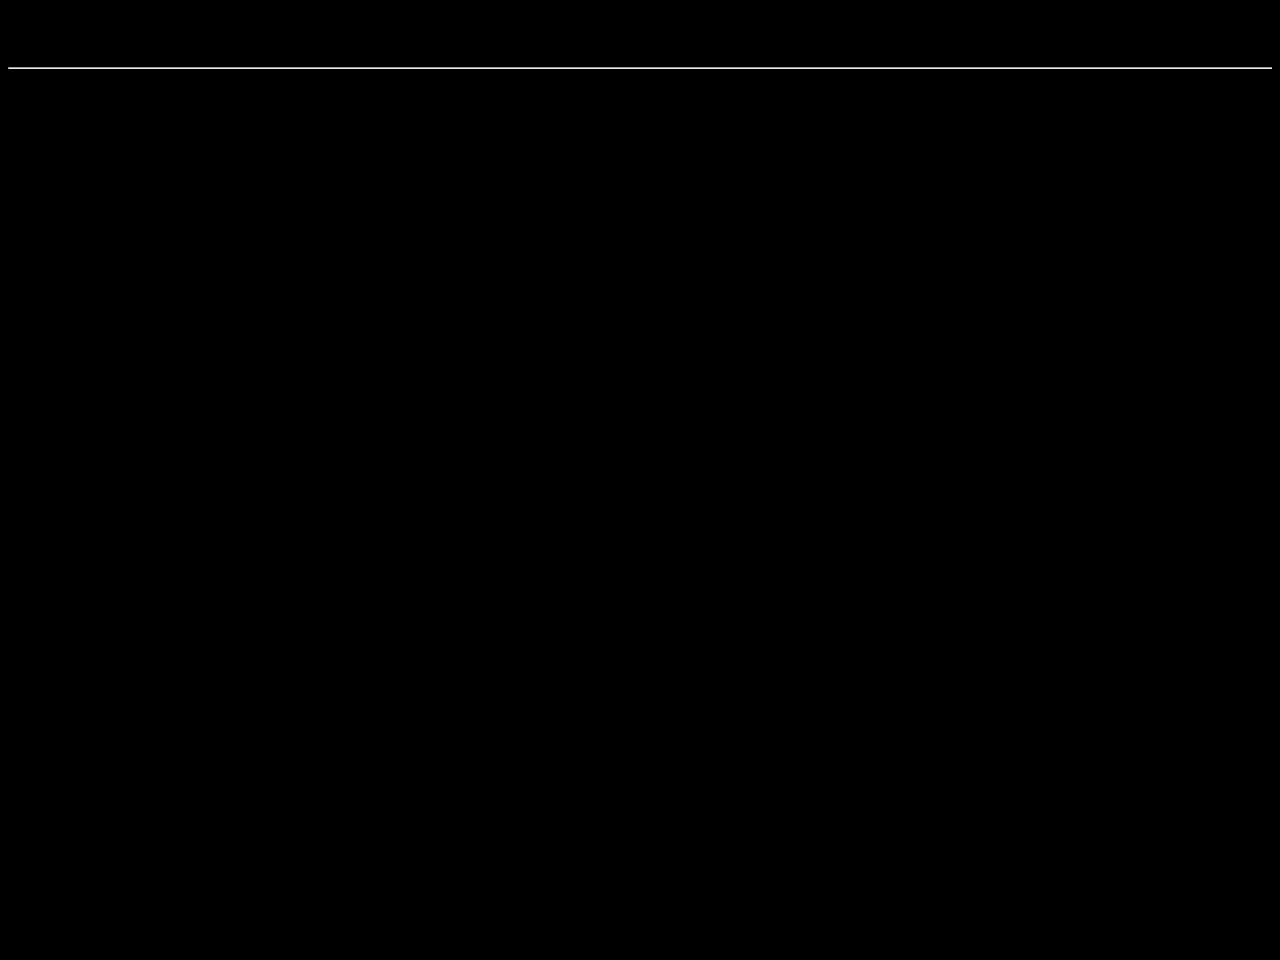 Law Offices of Karen Cline - Sonoma CA Lawyers